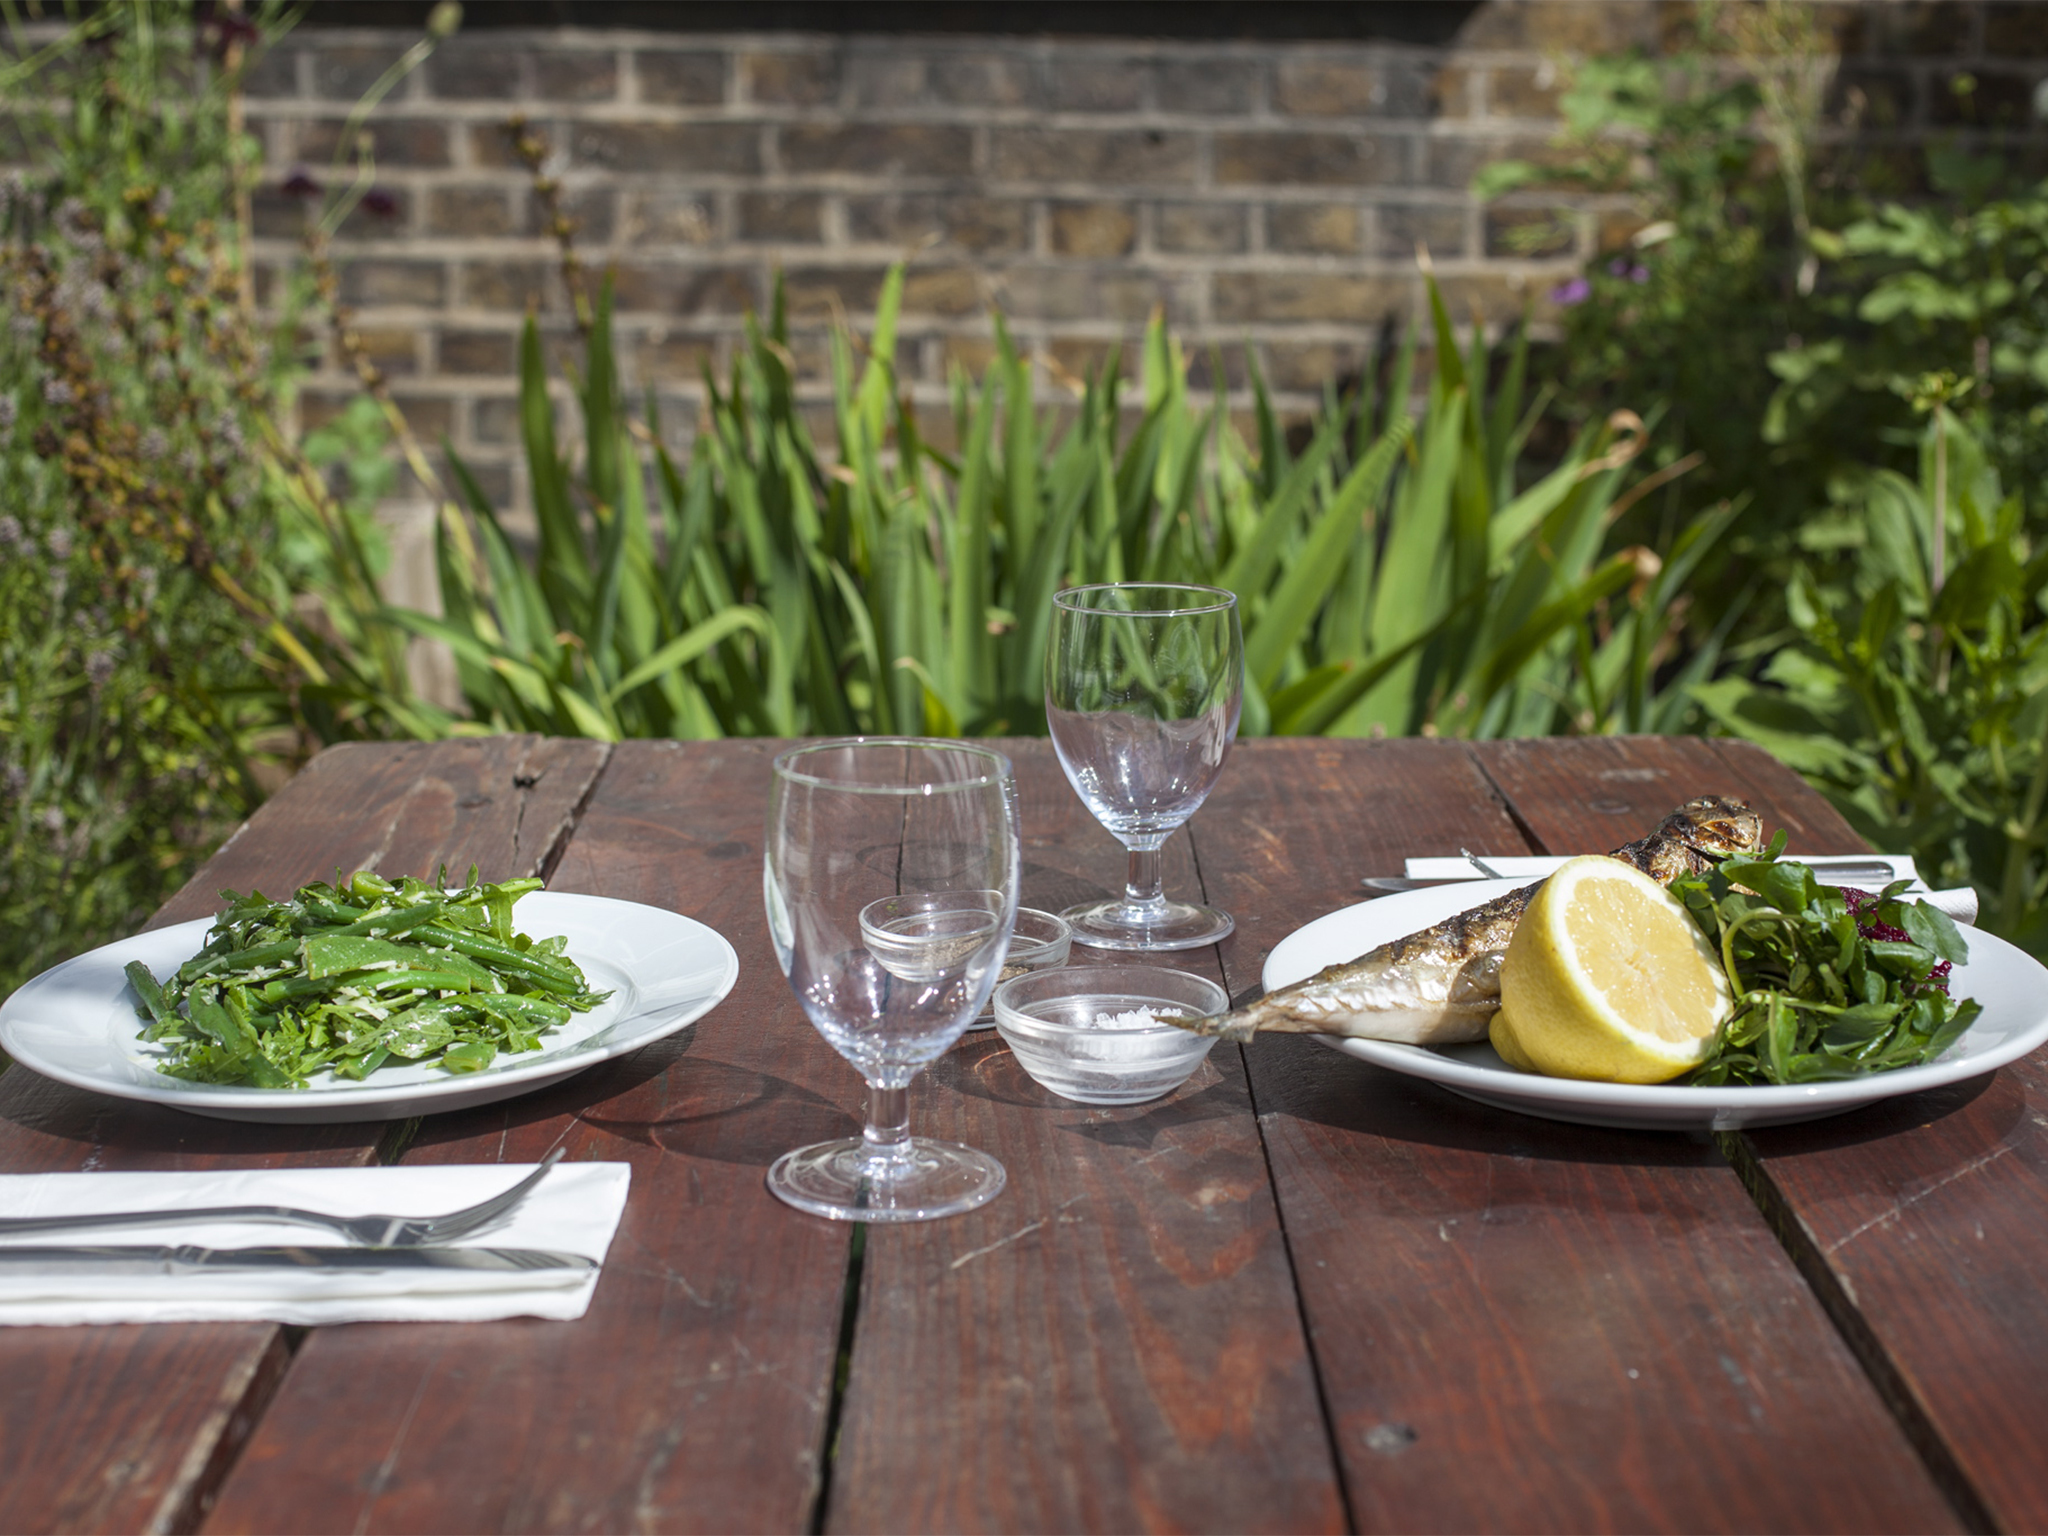 Outdoor dining spots in the city